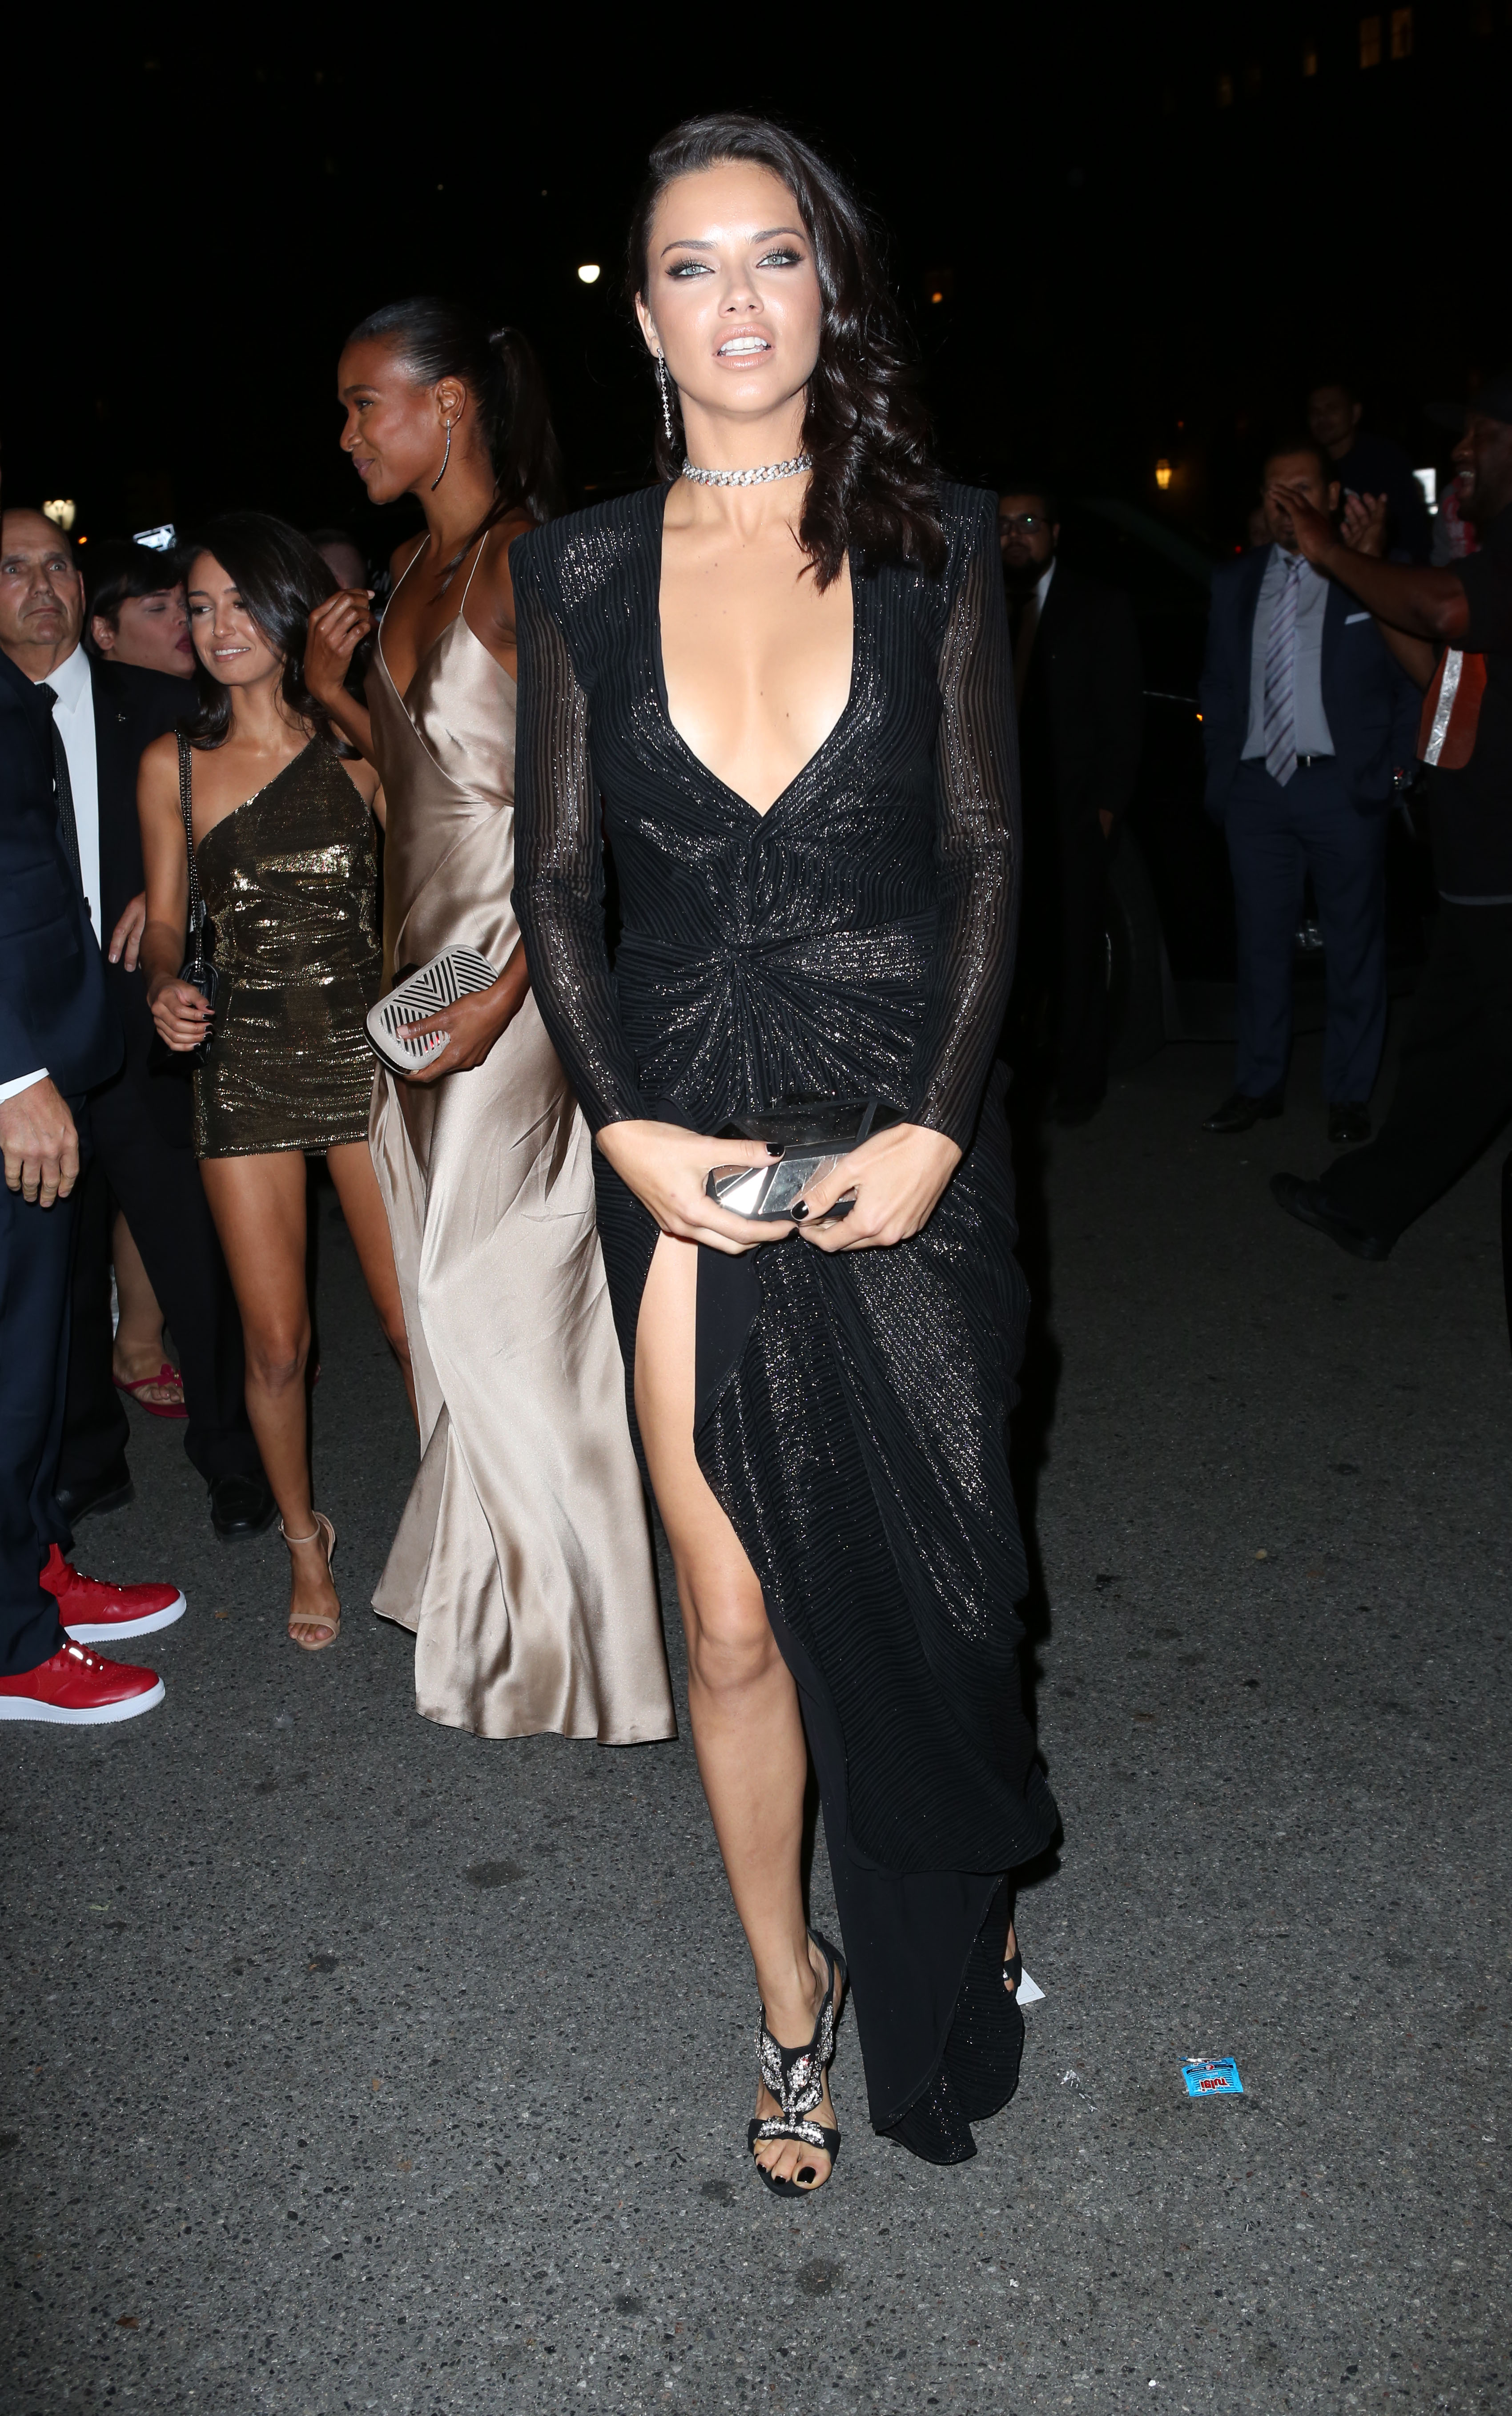 Harper's BAZAAR Celebrates 'ICONS By Carine Roitfeld' in NYC <P> Pictured: Adriana Lima <B>Ref: SPL1572808  090917  </B><BR/> Picture by: Richard Buxo / Splash News<BR/> </P><P> <B>Splash News and Pictures</B><BR/> Los Angeles:310-821-2666<BR/> New York:212-619-2666<BR/> London:870-934-2666<BR/> <span id=